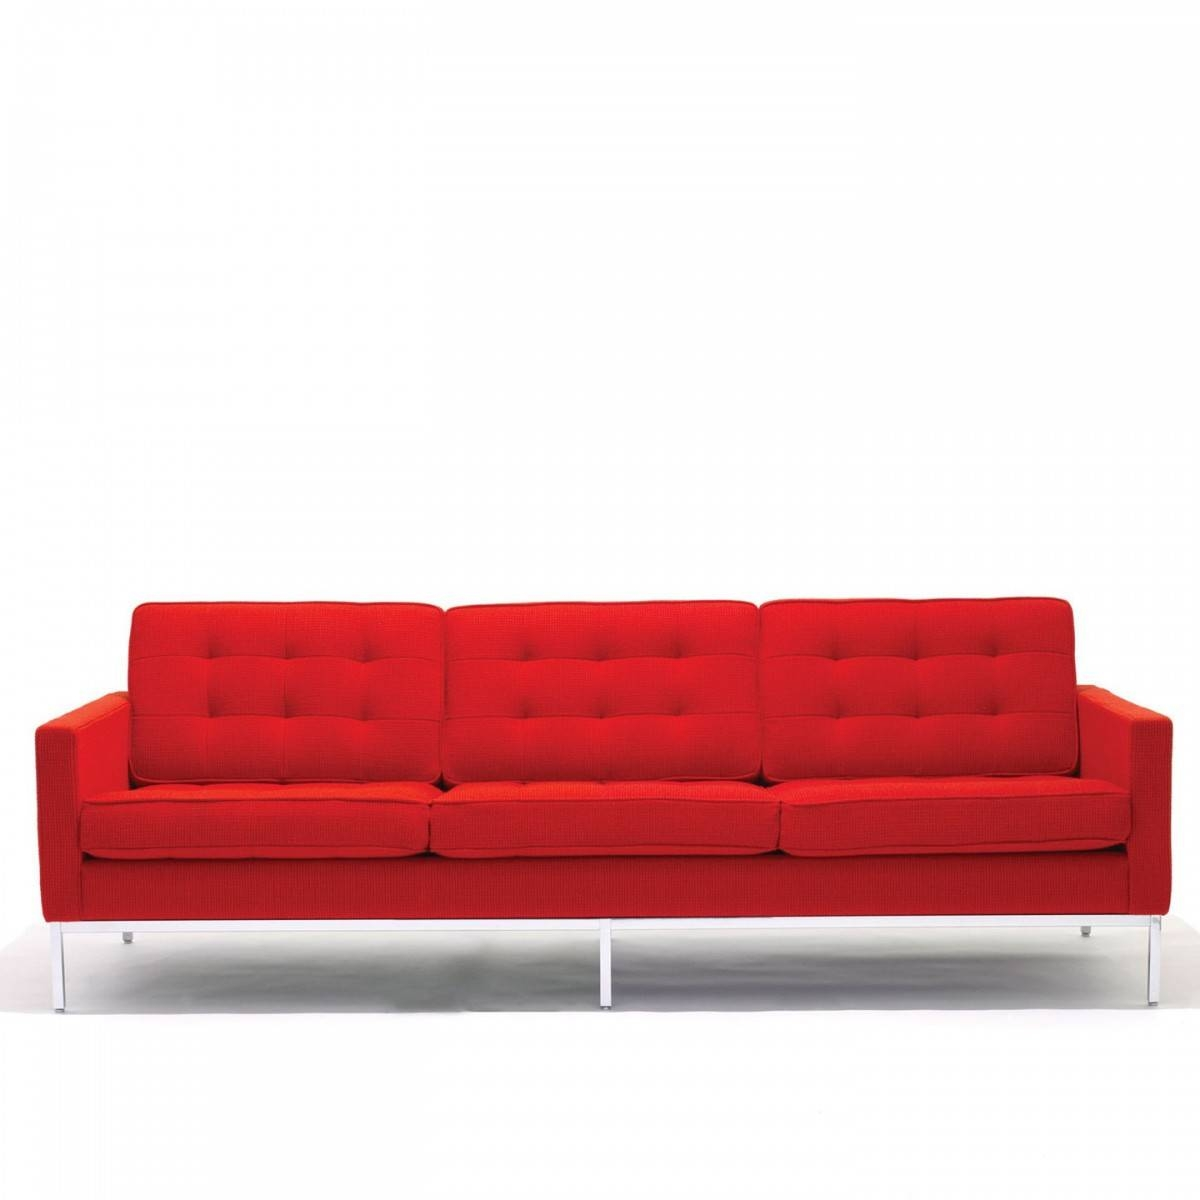 Florence Knoll 3 Seat Sofa regarding Florence Knoll 3 Seater Sofas (Image 11 of 30)